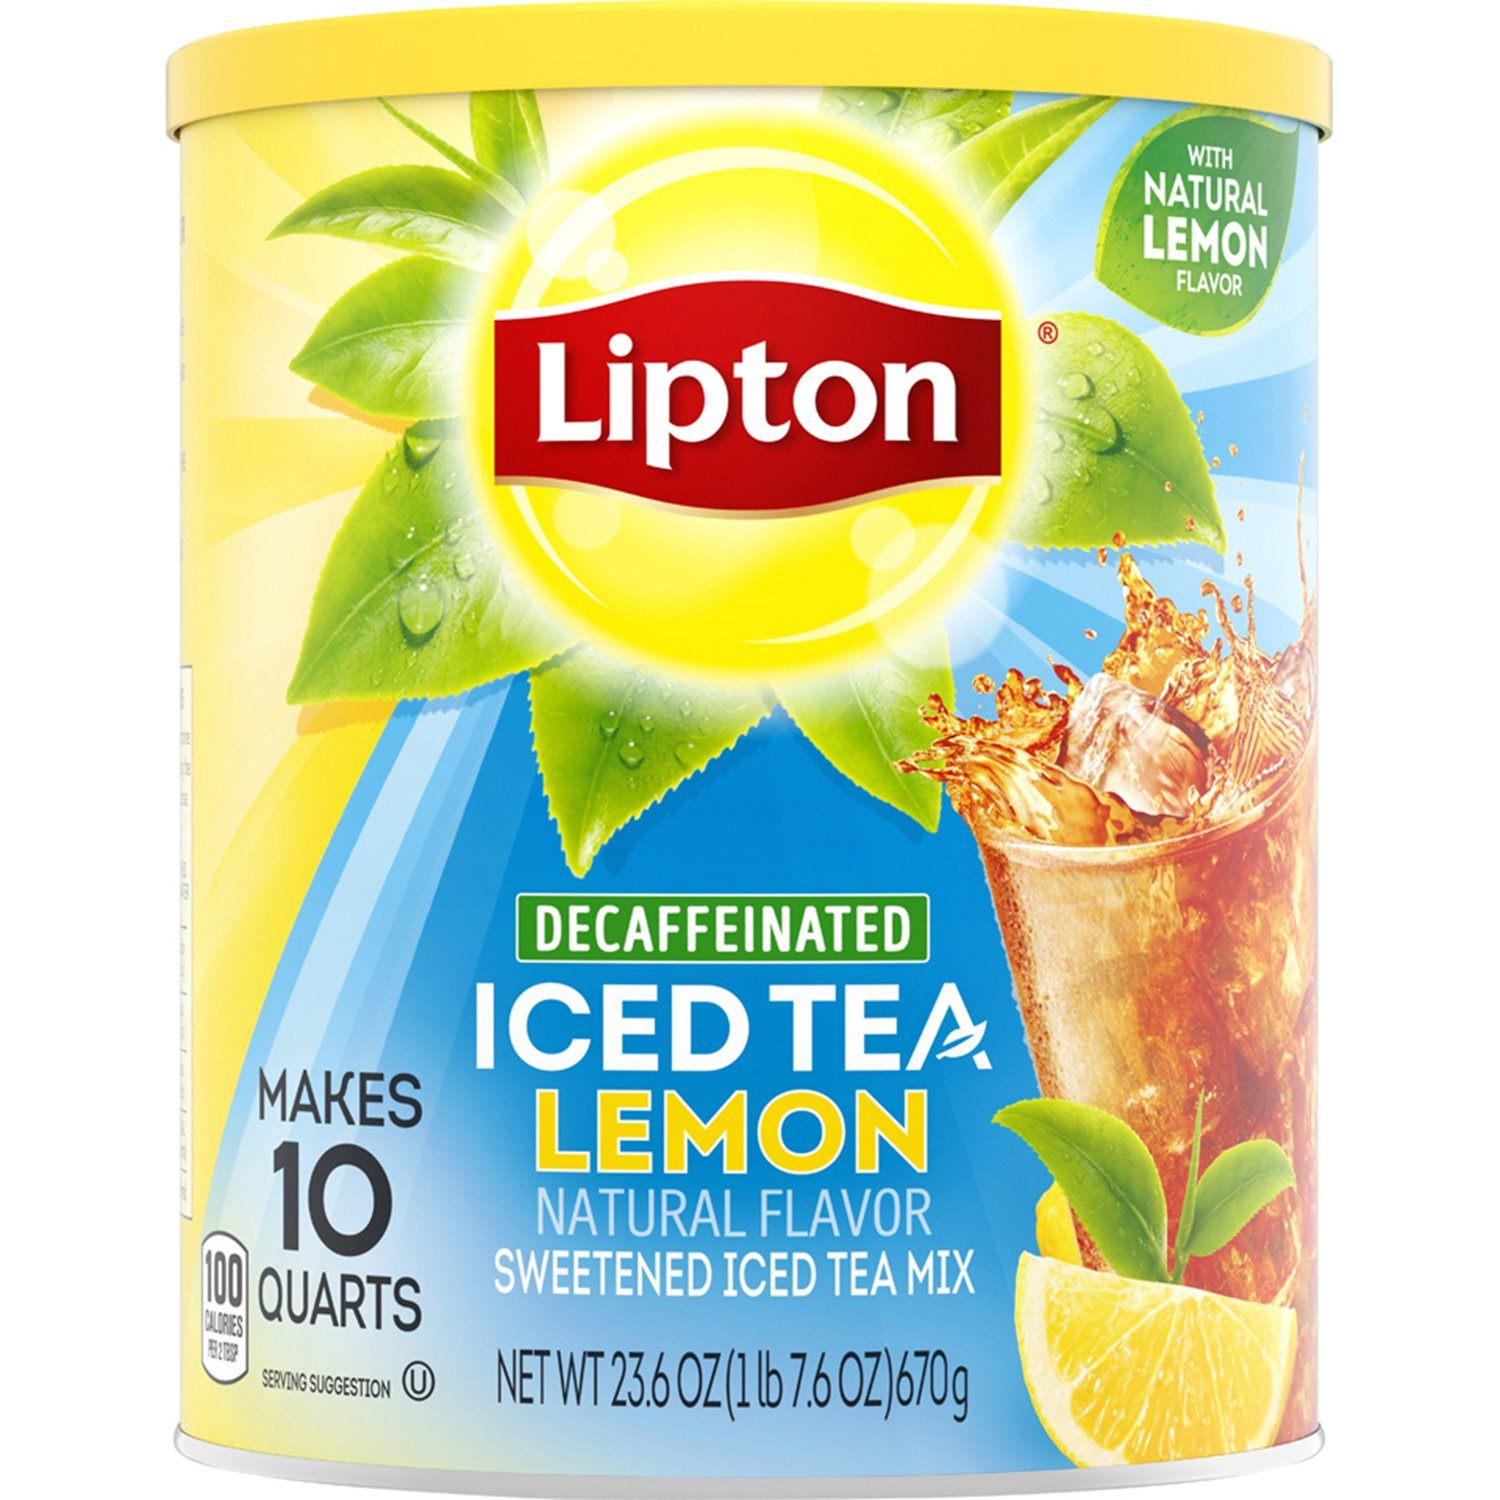 Lipton Iced Tea Mix Lipton Decaf Lemon 10 Quart - 23.6 Oz